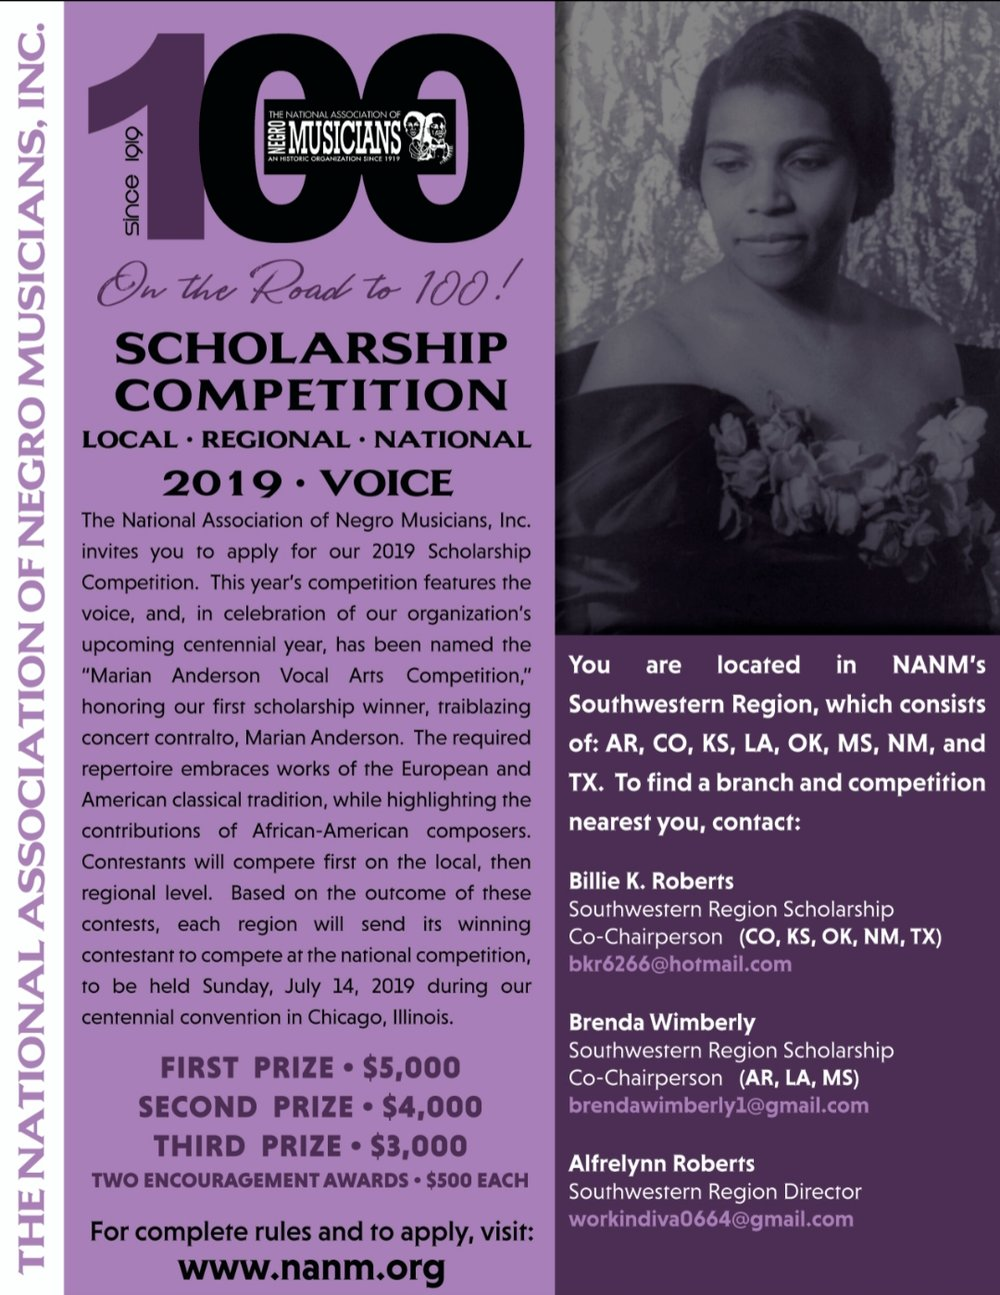 "It was in 1919 — 100 years ago — that a young, unknown classical singer won the first scholarship from the National Association of Negro Musicians, founded that same year. Marian Anderson went on to become one of the 20th century's most celebrated concert contraltos. She died in 1993 at age 96.  Now young musical hopefuls from the Dallas-Fort Worth area and throughout the Southwest can compete in association's centennial year for the same scholarship that Anderson won. The Marian Anderson Vocal Arts Competition will begin at the local level before advancing to regional and national rounds. Required repertoire includes works of American and European classical tradition and highlights the works of African-American composers.  This is the first year the competition is named in Anderson's honor. Winners will be announced July 14 at the centennial convention in Chicago. First-, second- and third-place prizes are $5,000, $4,000 and $3,000, respectively. Two ""encouragement"" awards of $500 also will be given.  Applications, including a $50 fee, are due Feb. 8. Visit www.nanm.org to apply.  The Dallas Metroplex Musicians' Association promotes this area. To find a branch near you, contact local/regional co-chairs Billie Roberts at bkr6266@hotmail.com and Brenda Wimberly at brendawimberly1@gmail.com or call 214-808-4587 or 682-587-9646."